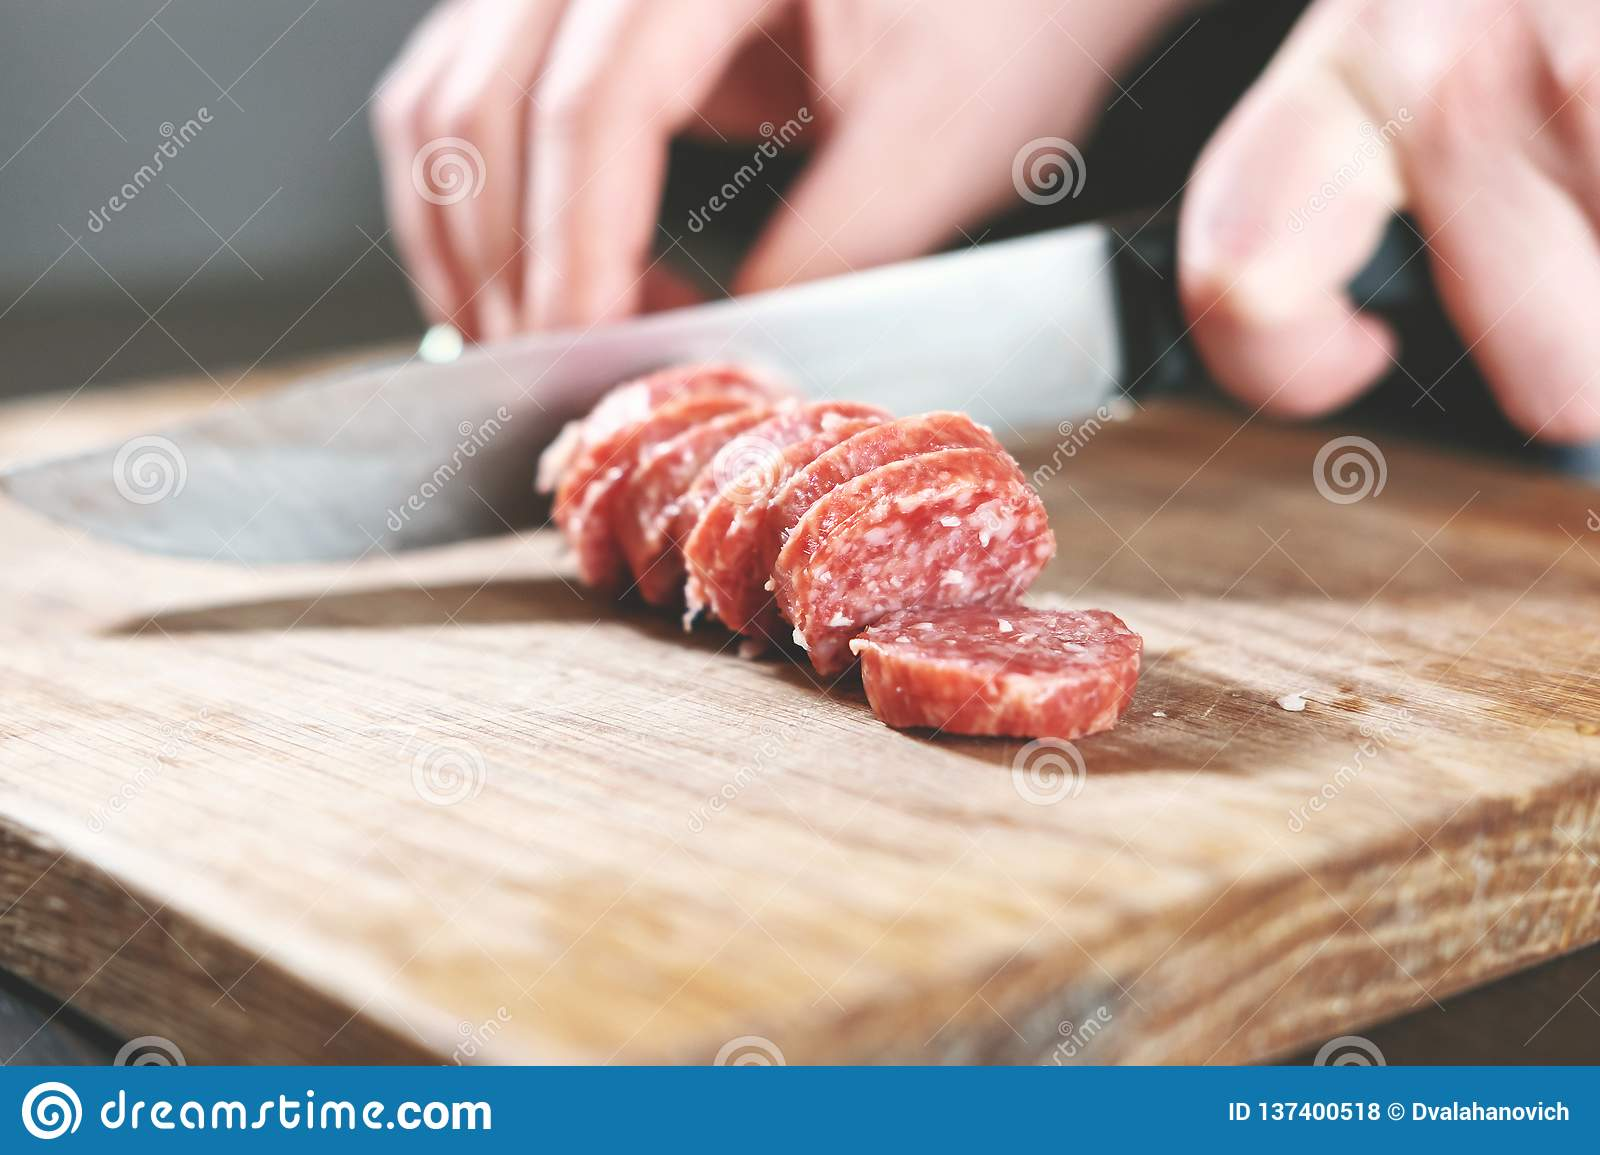 Sausage, knife, hands of woman, thick pieces, wooden plank, knife in female hands, woman cuts the sausage